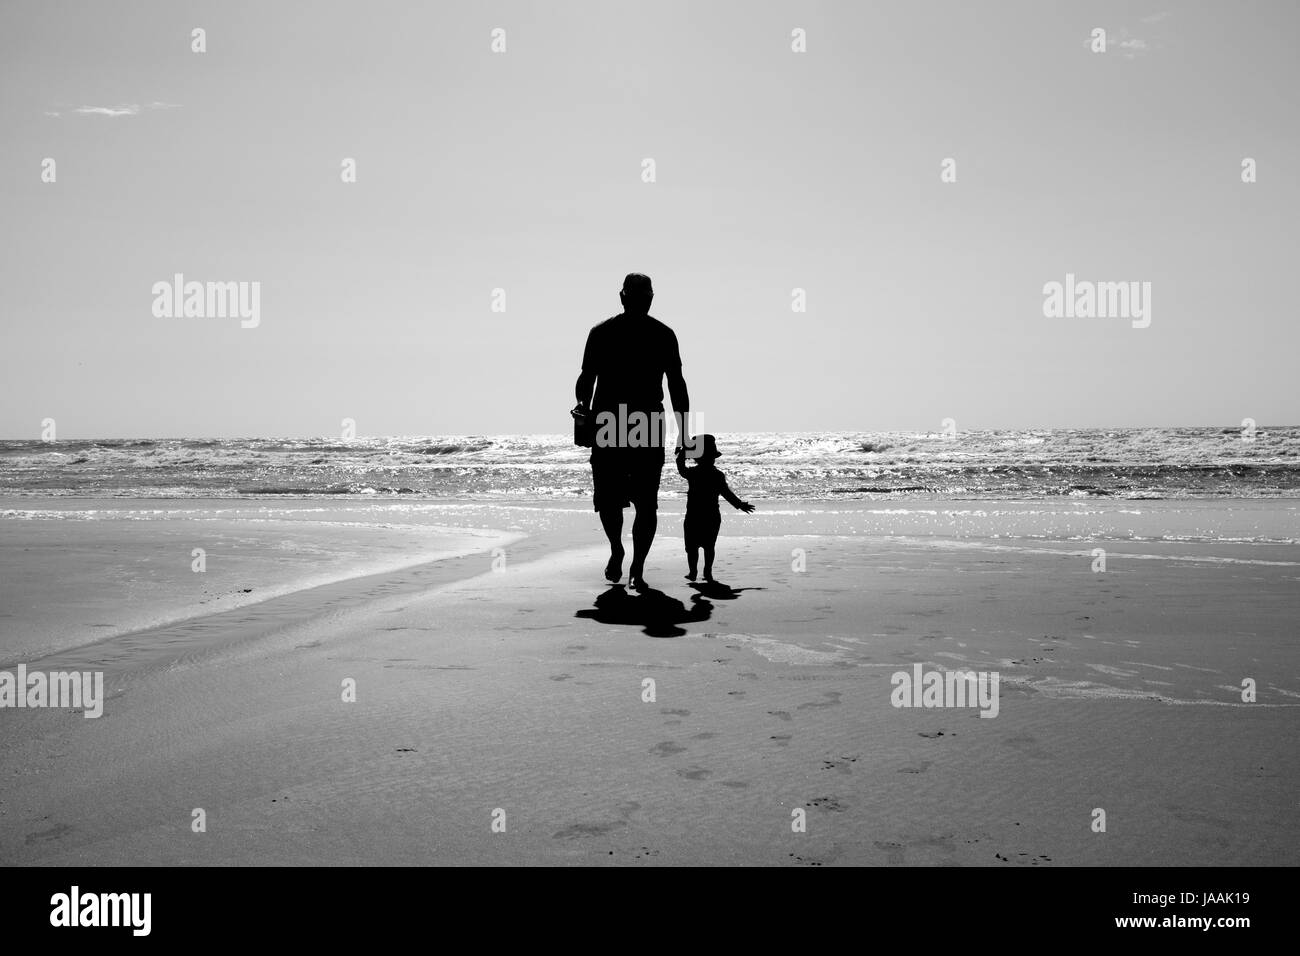 Silhouette of Man and Child Walking on the Beach - Stock Image